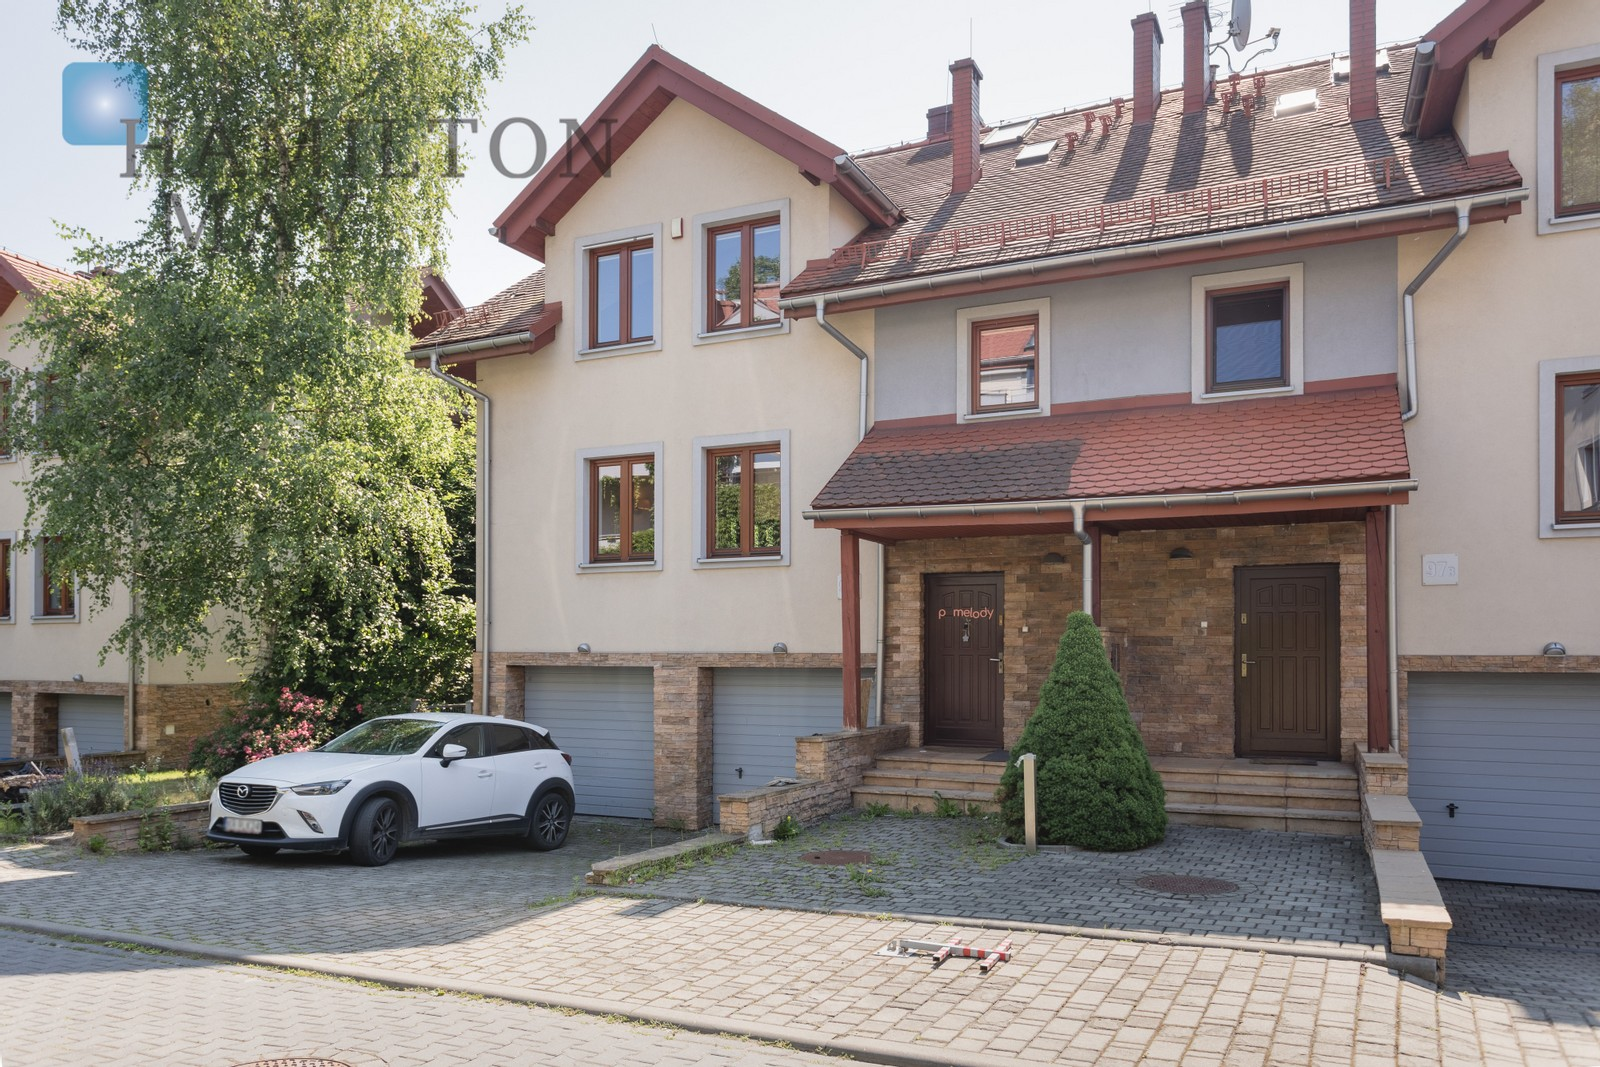 An attractive two level house in Wola Justowska - one of the most prestigious districts of Kraków Krakow for rent